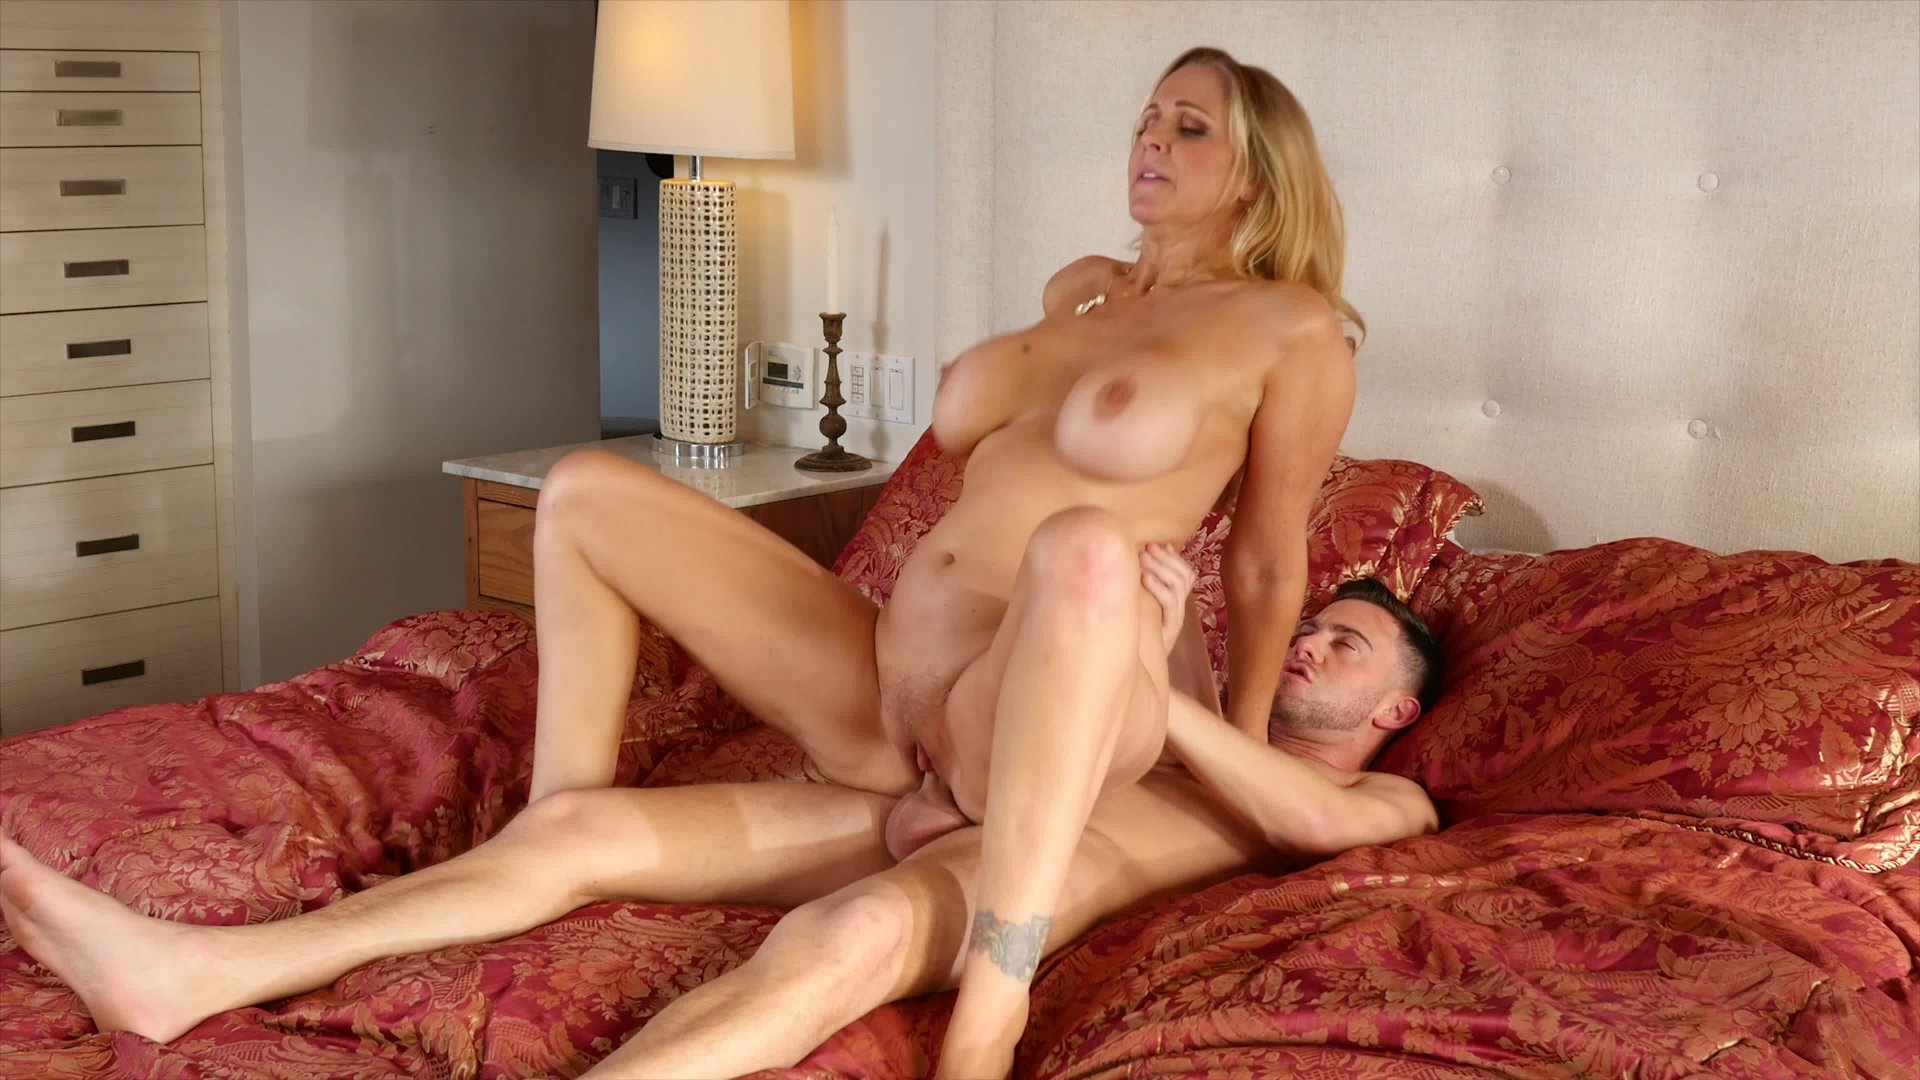 Xxx trailer mom sex, free adult boob tits sex scene